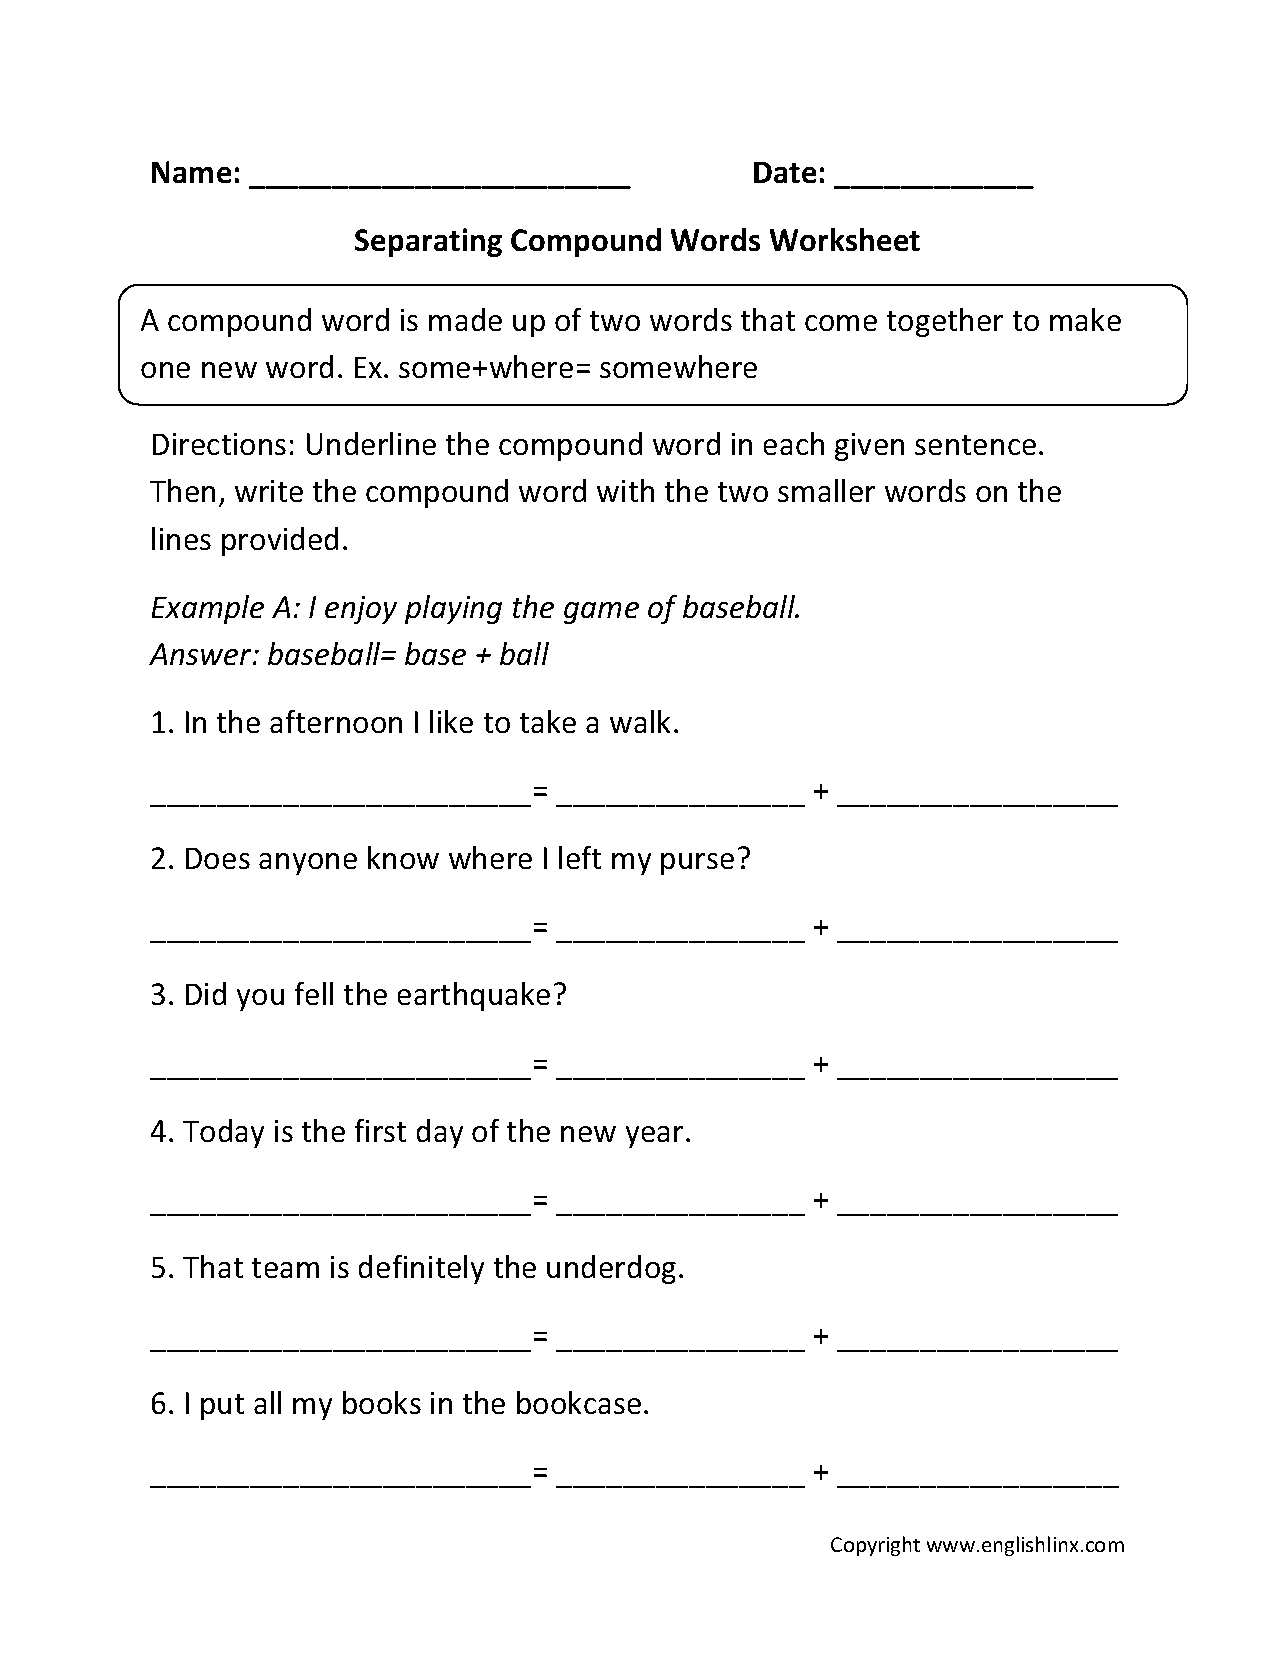 Printables Compound Words Worksheets englishlinx com compound words worksheets separating worksheets